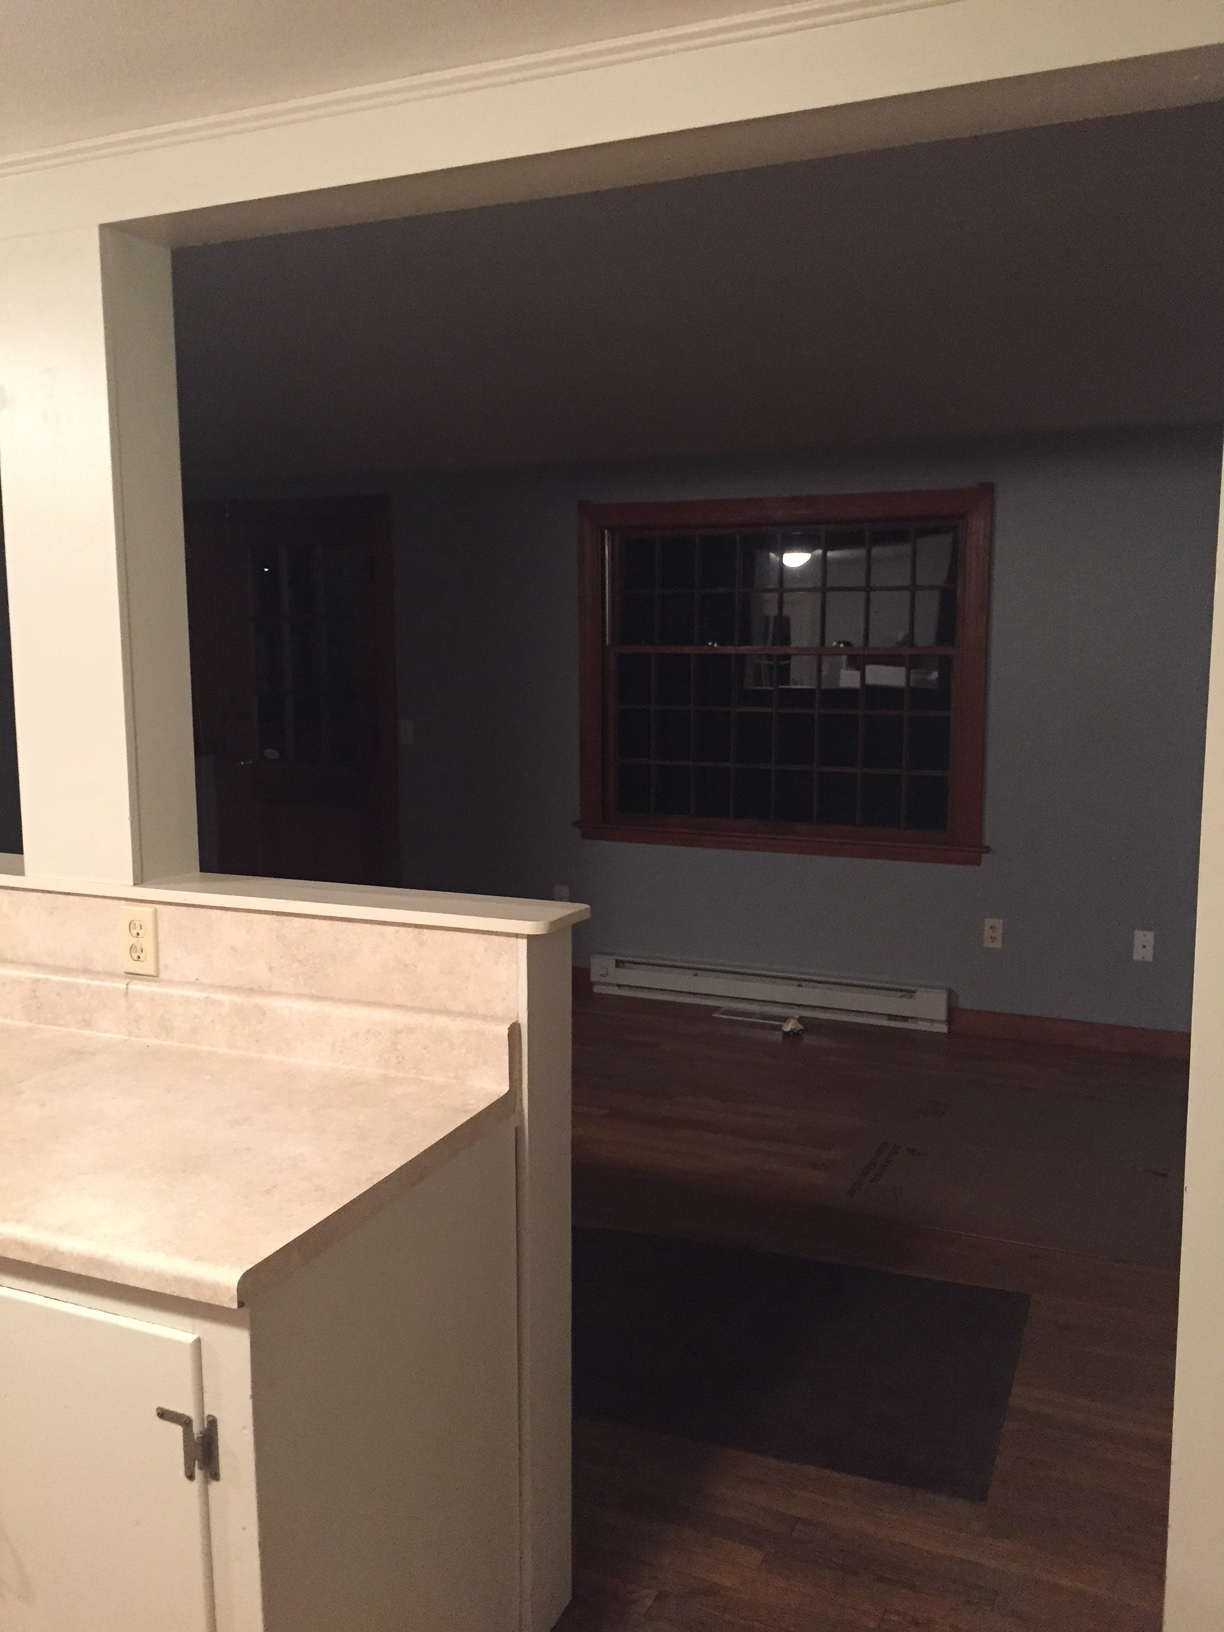 Looking into family room from kitchen